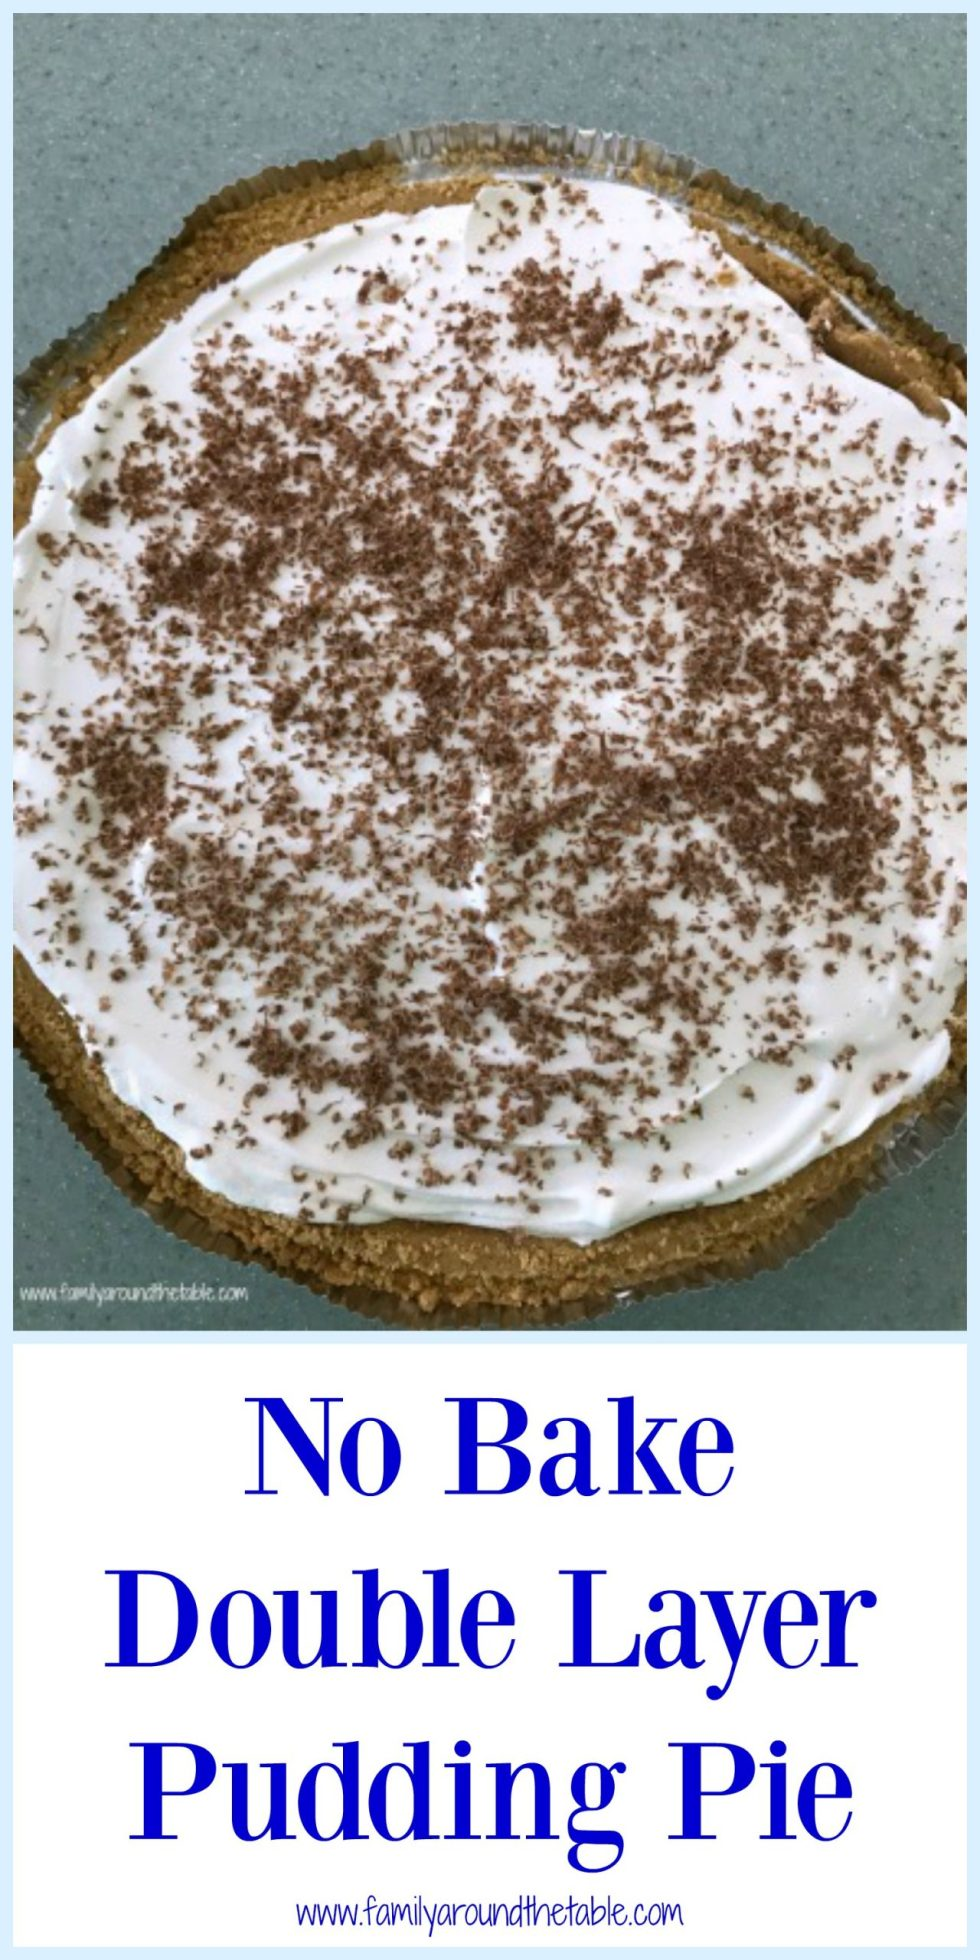 No bake double layer pudding pie is perfect for any pot luck occasion.